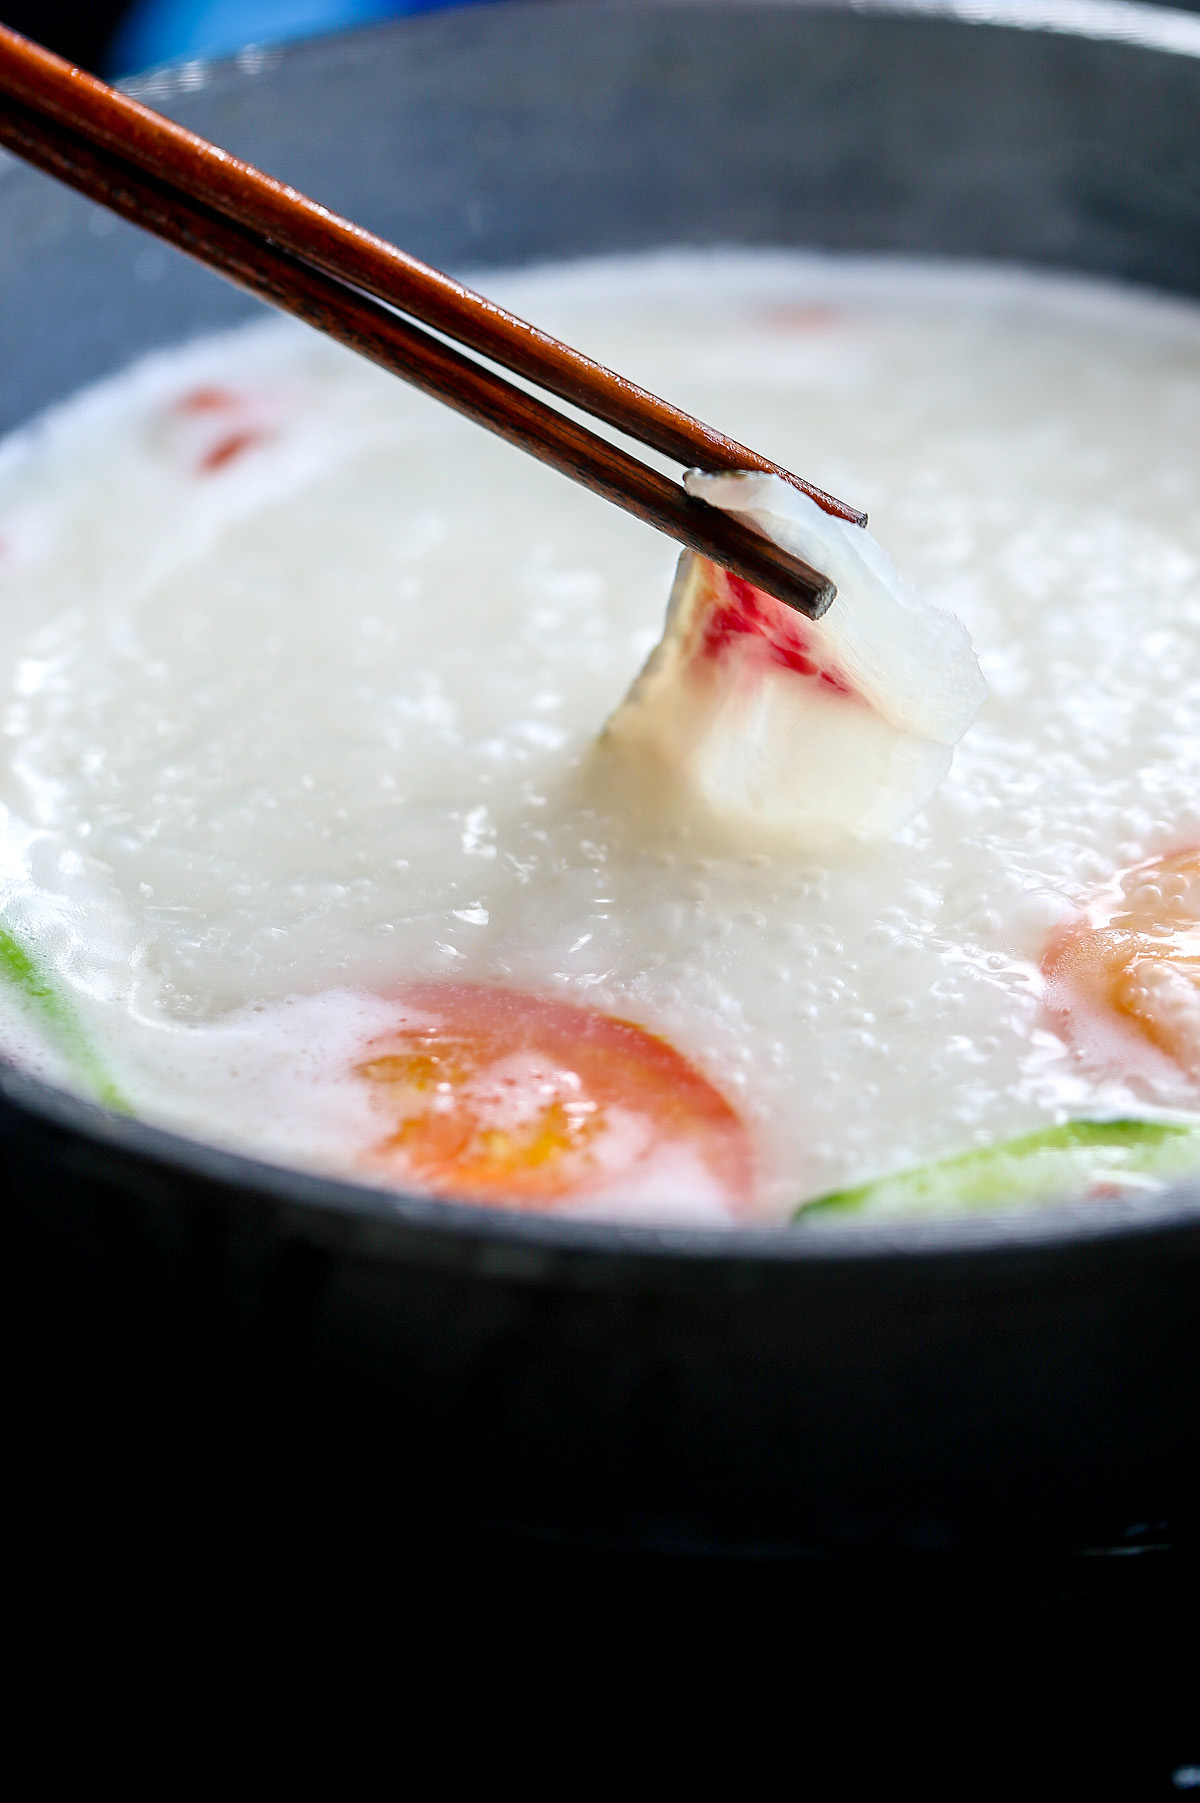 Hot Pot |chinasichuanfood.com